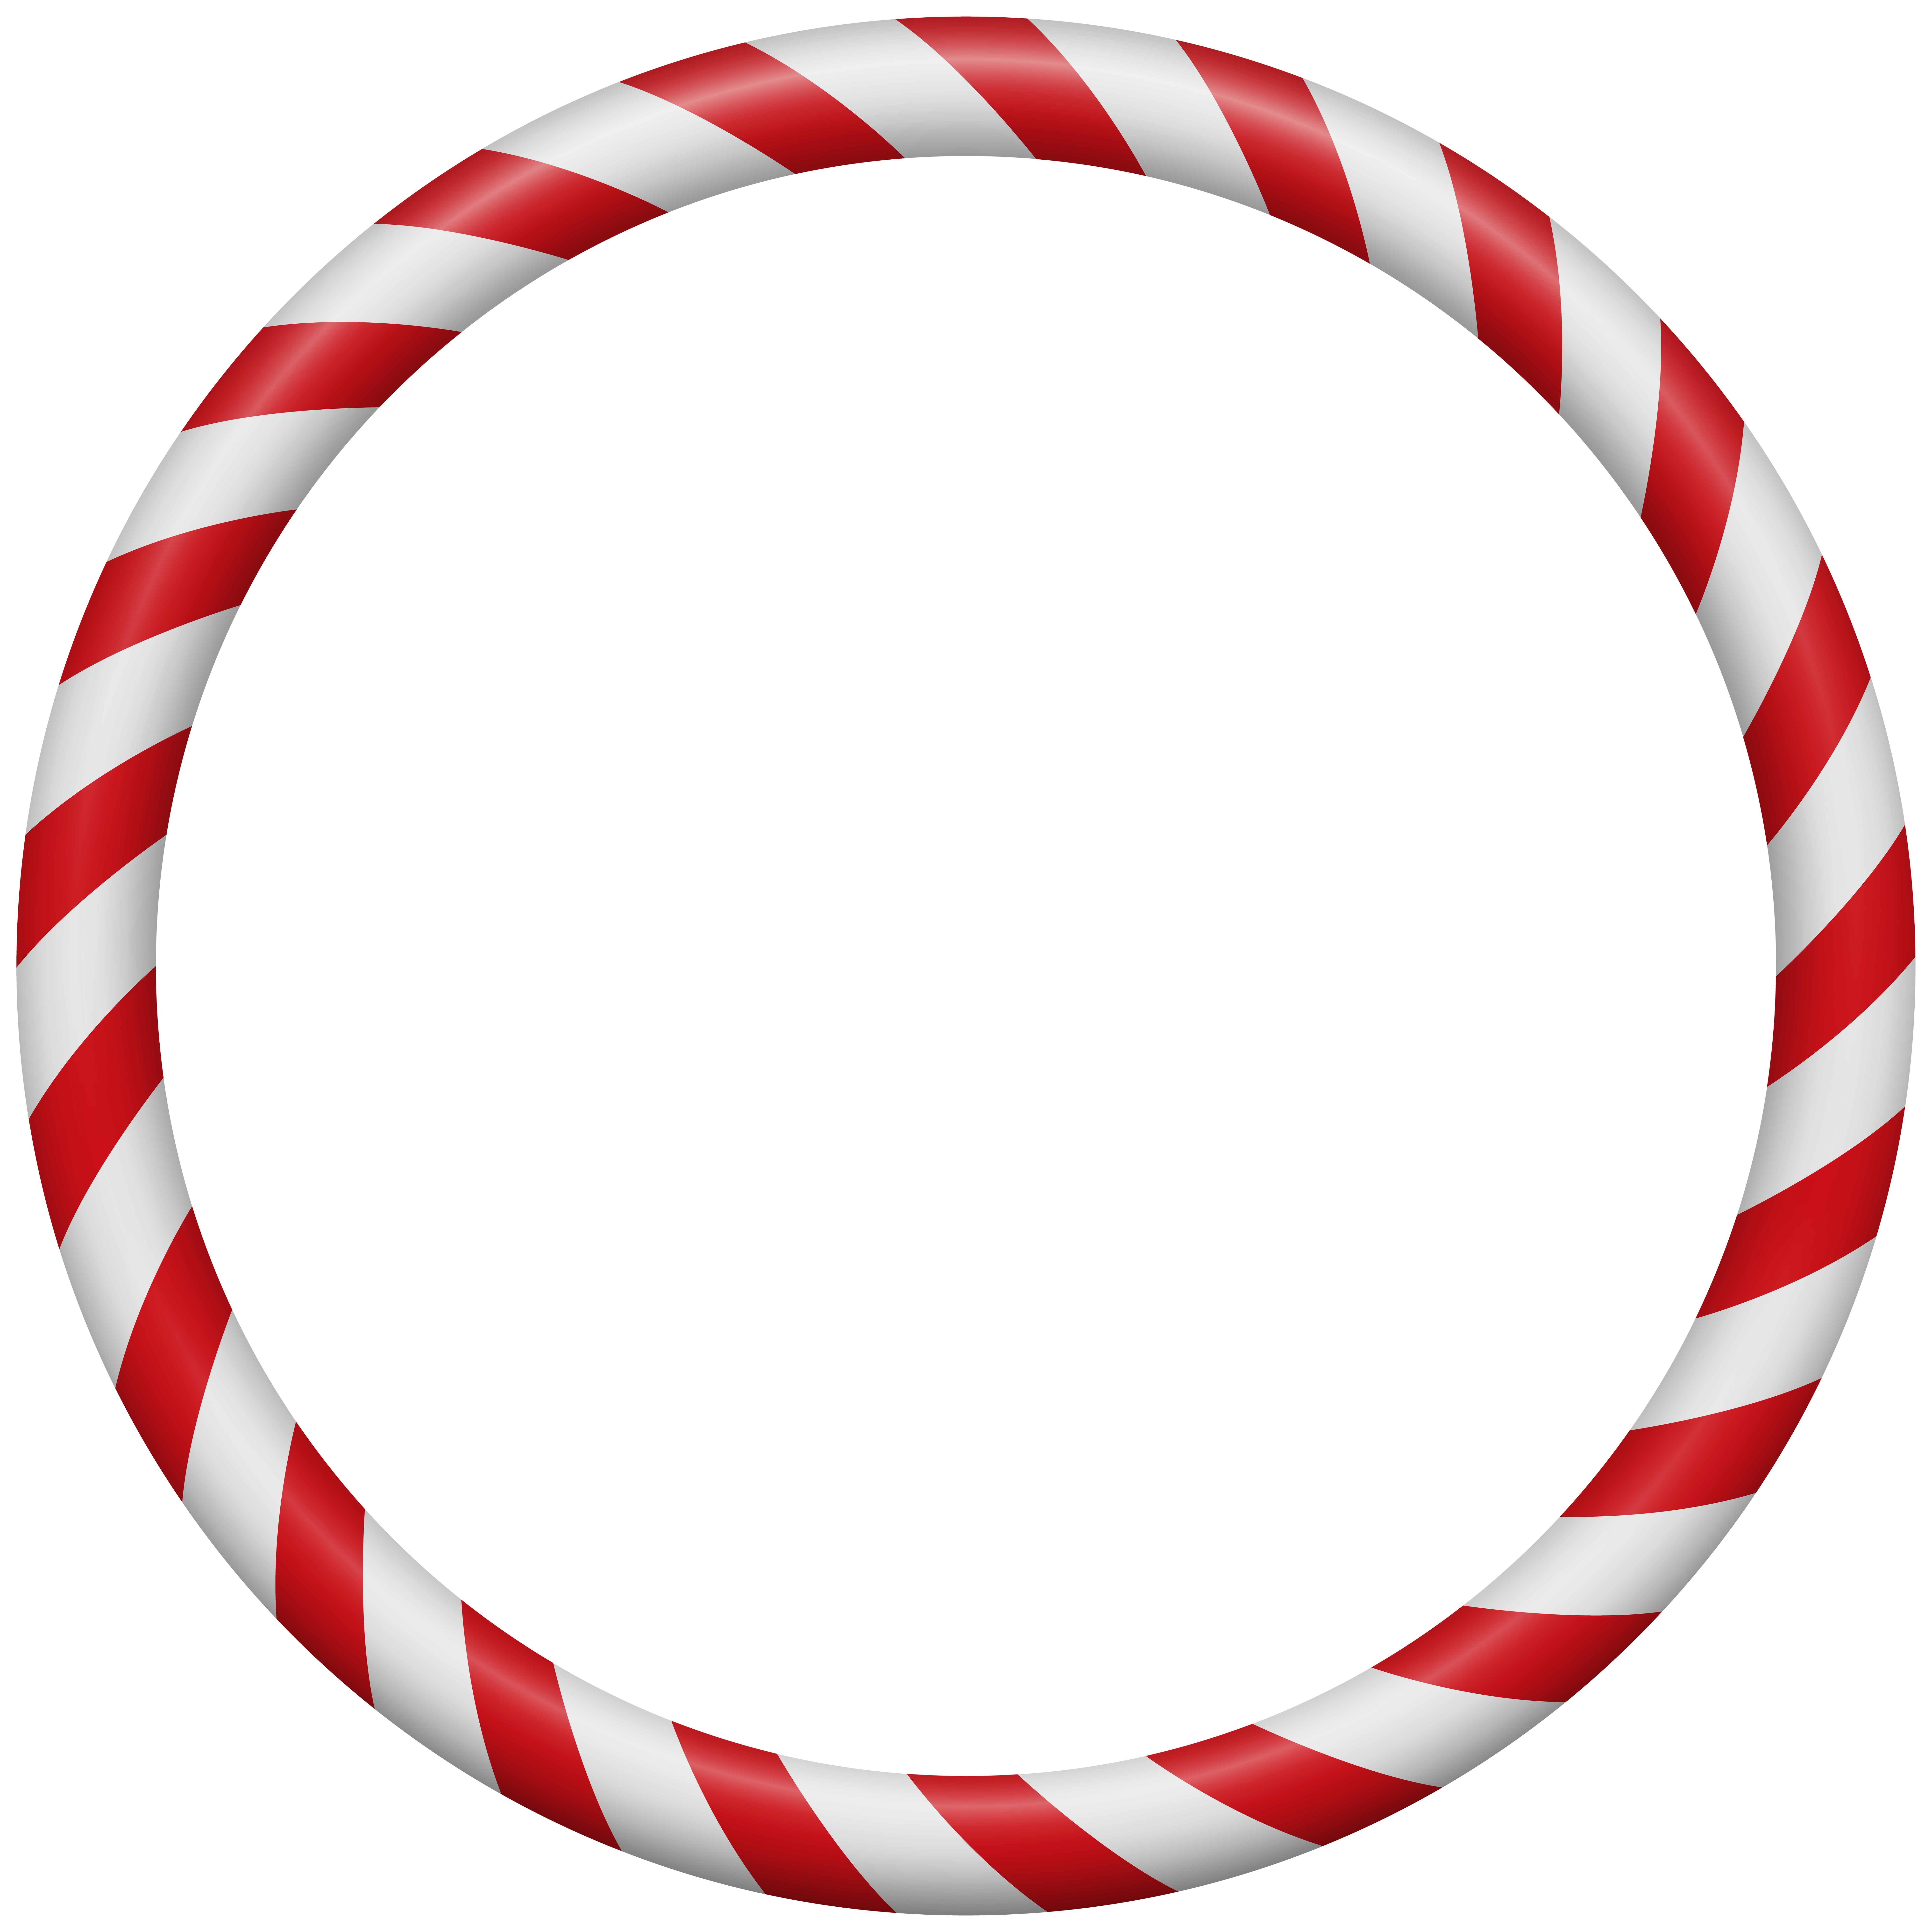 Candy Cane Red Christmas Border Frame Clip Art Gallery Yopriceville High Quality Images And Transparent Png F Frame Clipart Christmas Border Free Clip Art